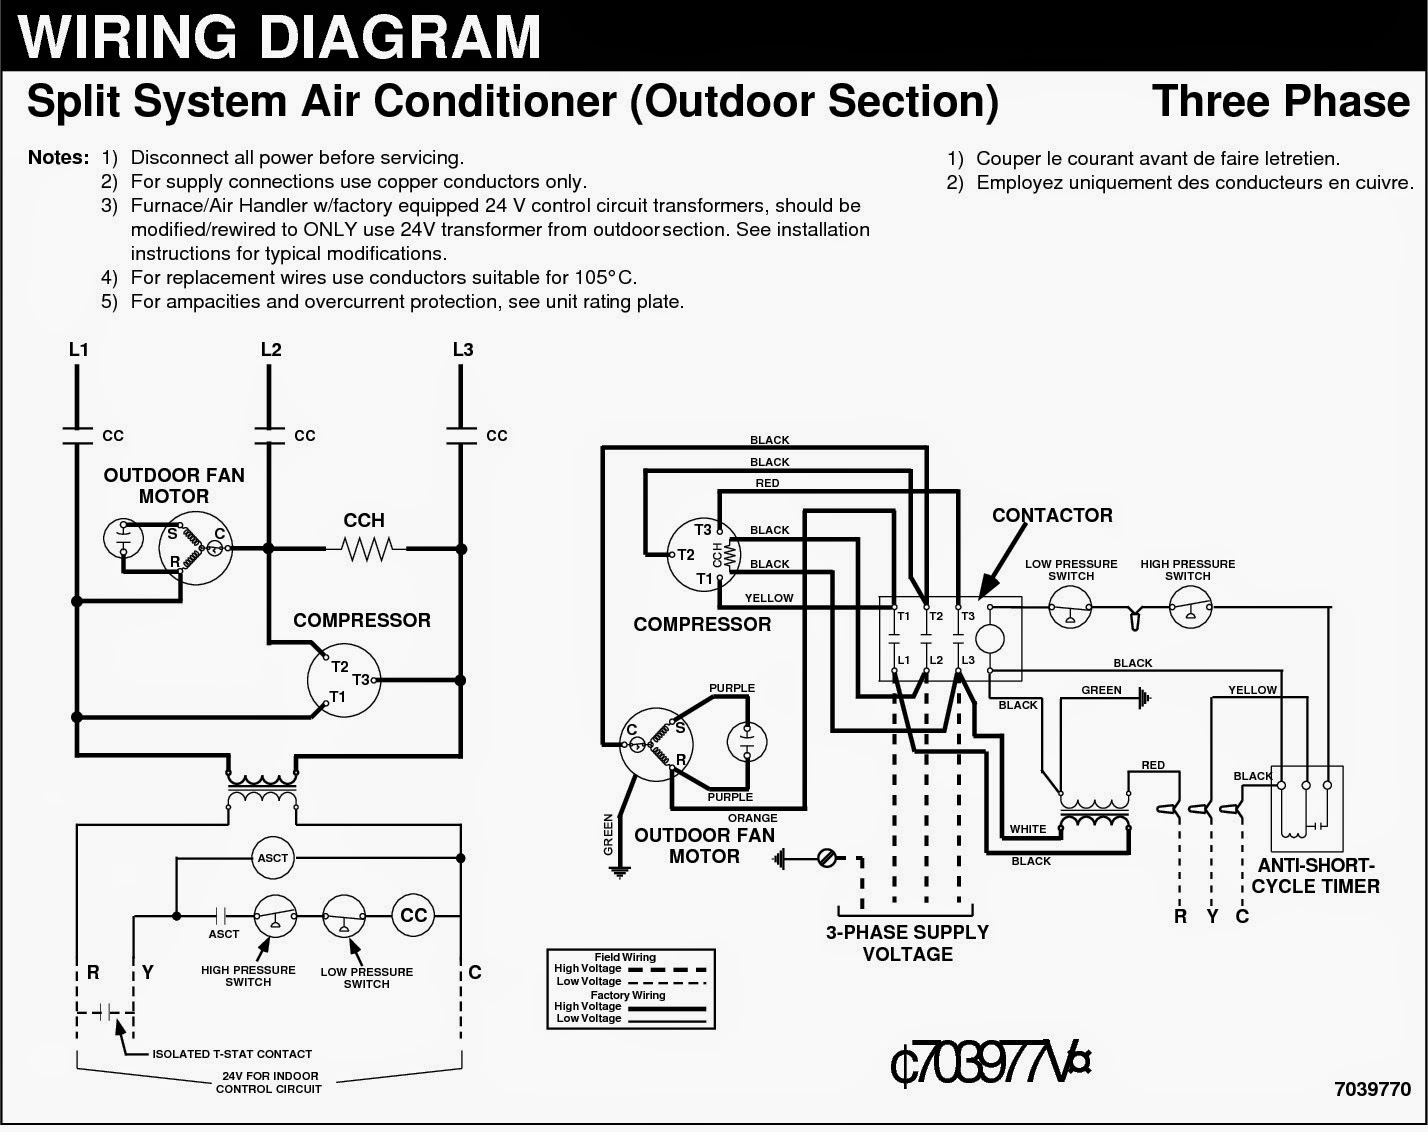 Electrical Wiring Diagrams For Air Conditioning on three wire single phase motor wiring diagram